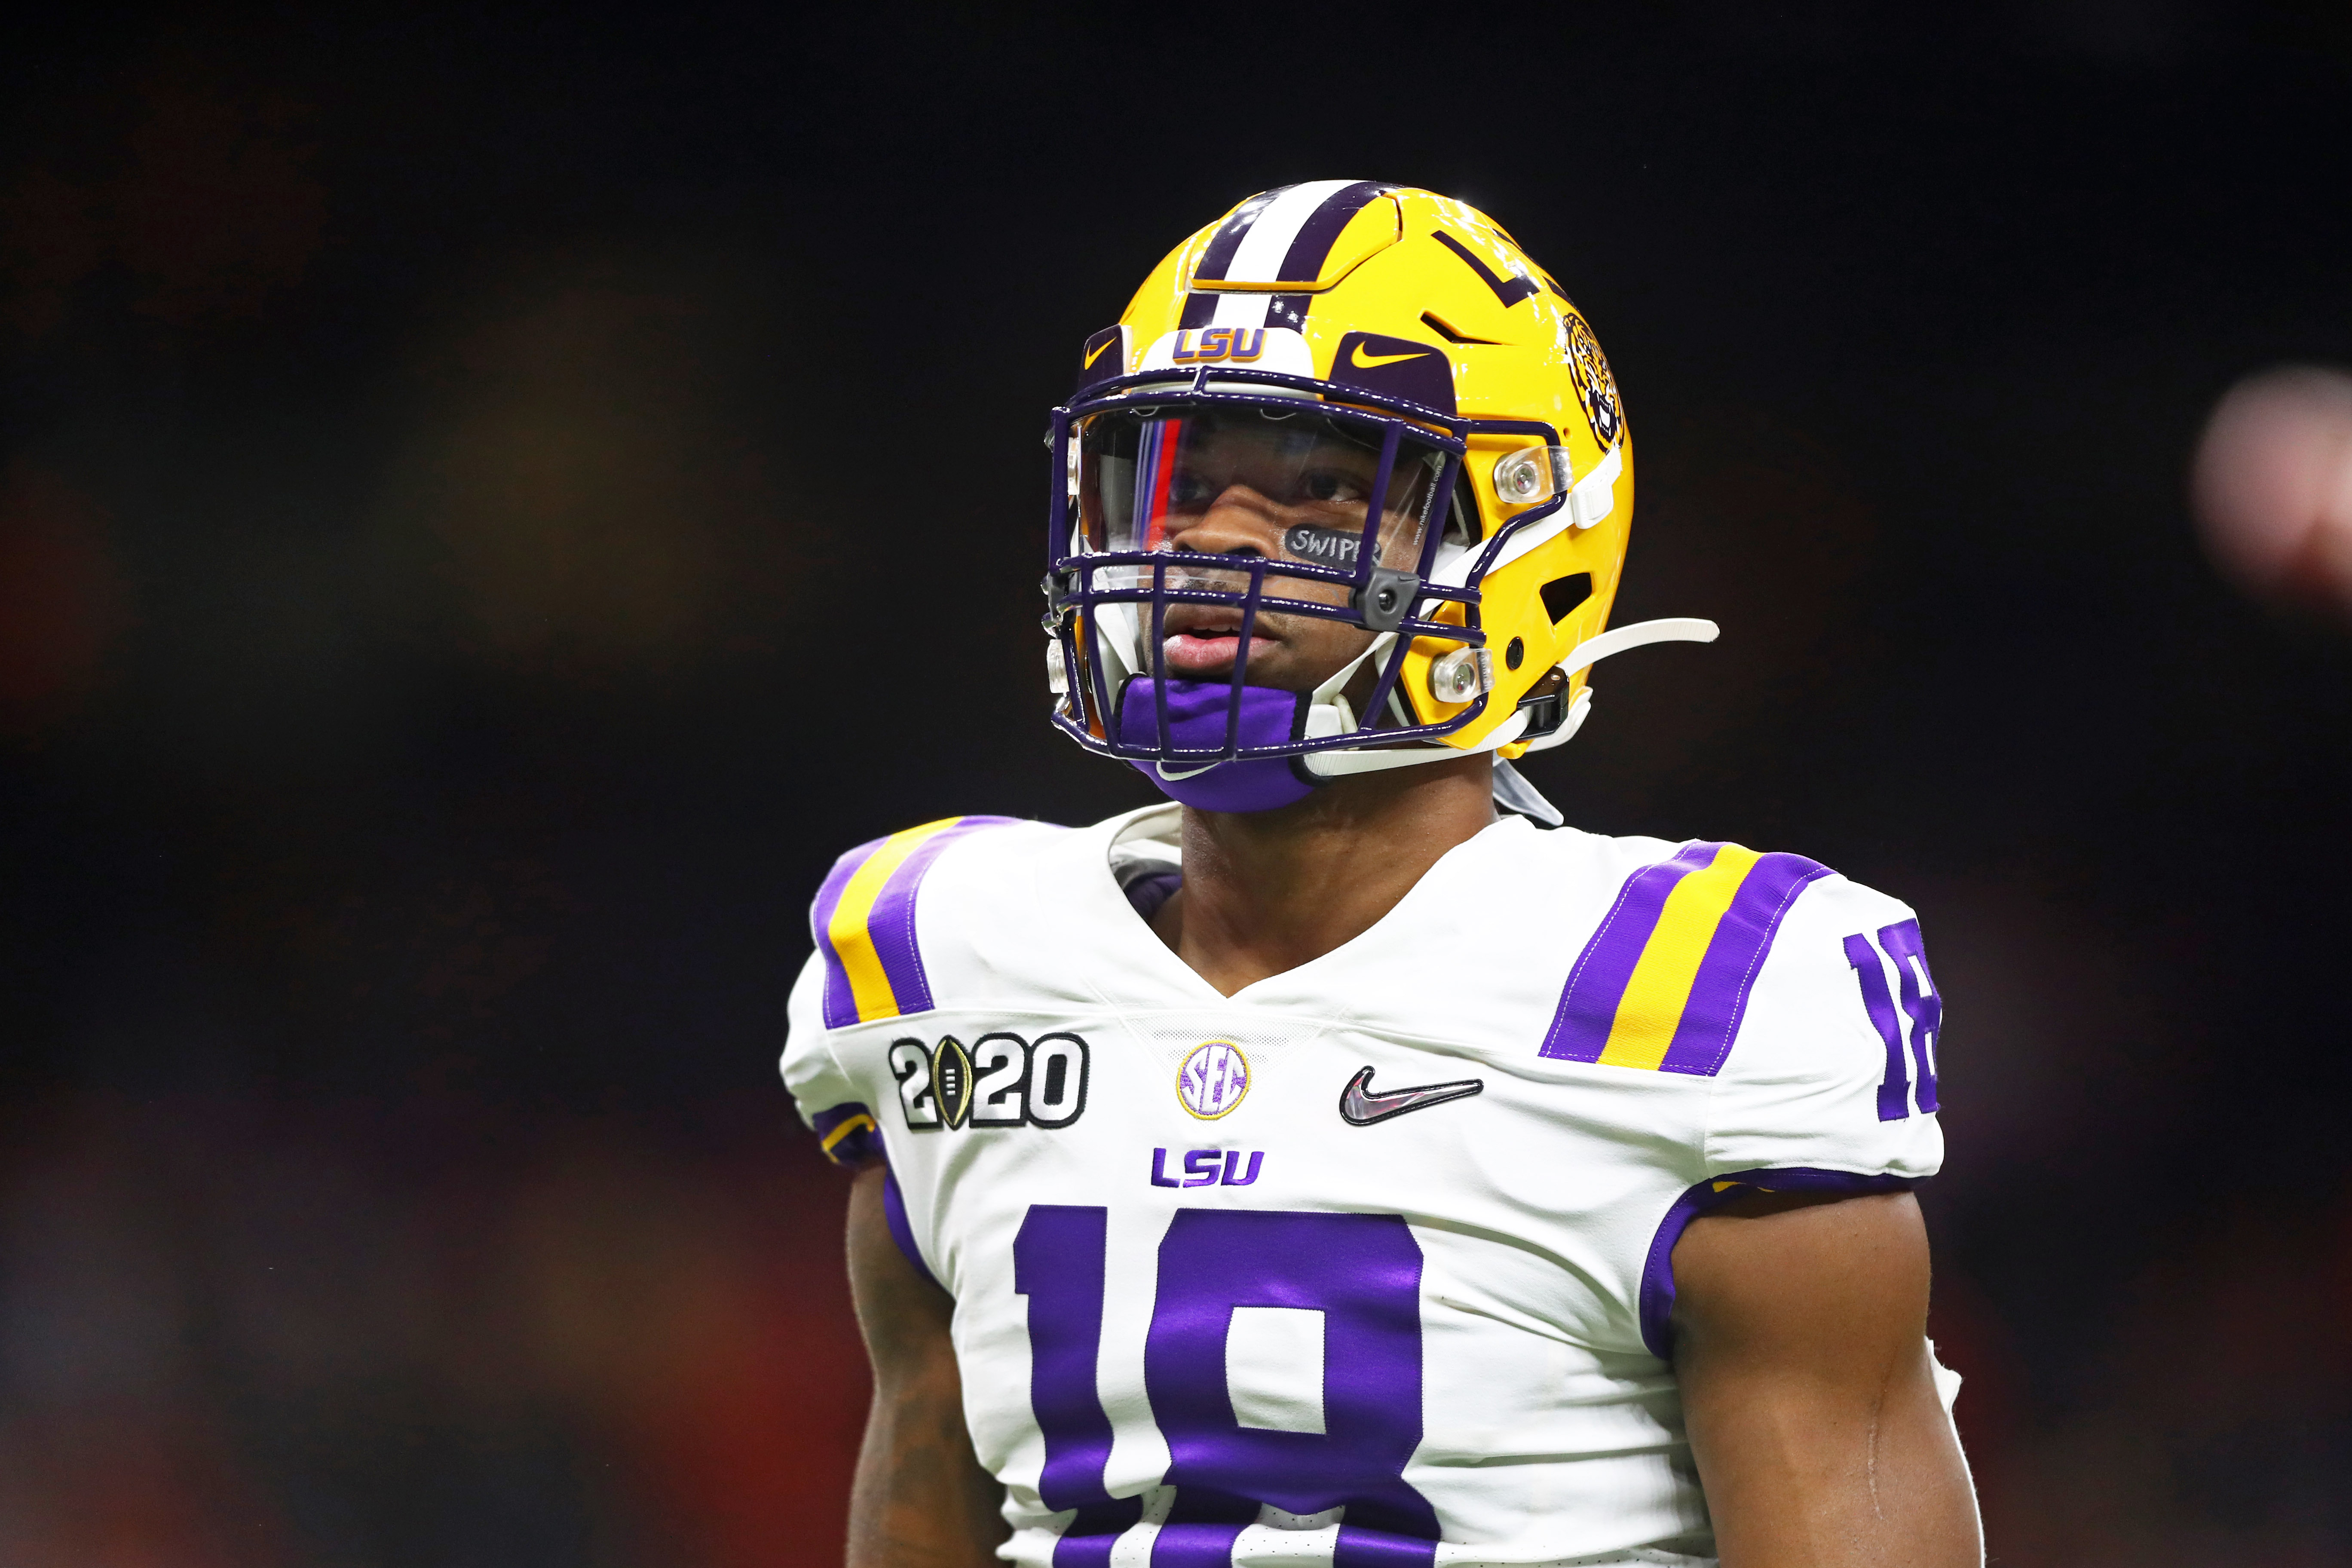 Mel Kiper Has Five LSU Players Going in First Round Mock Draft 2.0